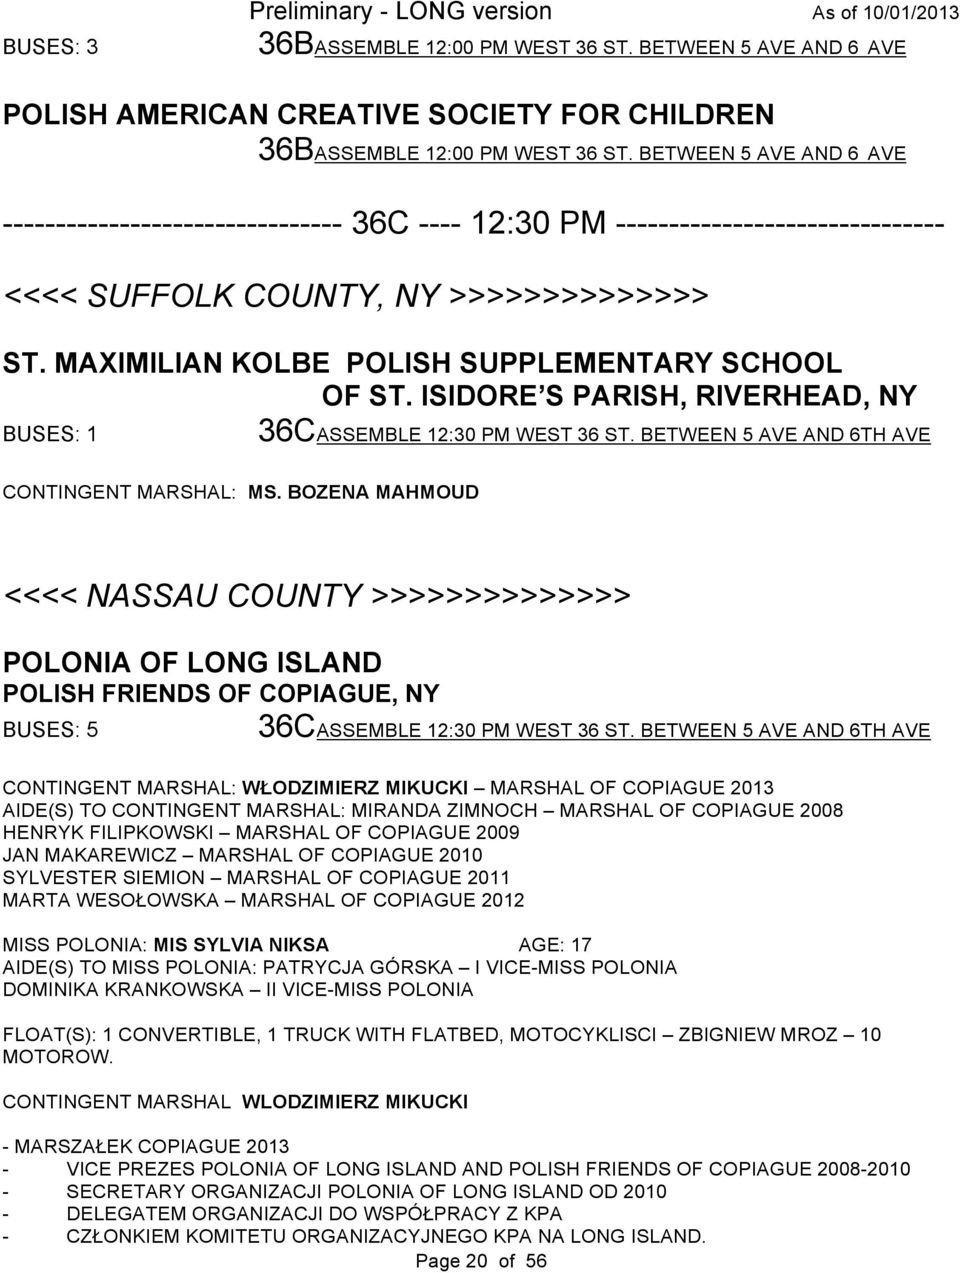 MAXIMILIAN KOLBE POLISH SUPPLEMENTARY SCHOOL OF ST. ISIDORE S PARISH, RIVERHEAD, NY BUSES: 1 36CASSEMBLE 12:30 PM WEST 36 ST. BETWEEN 5 AVE AND 6TH AVE CONTINGENT MARSHAL: MS.